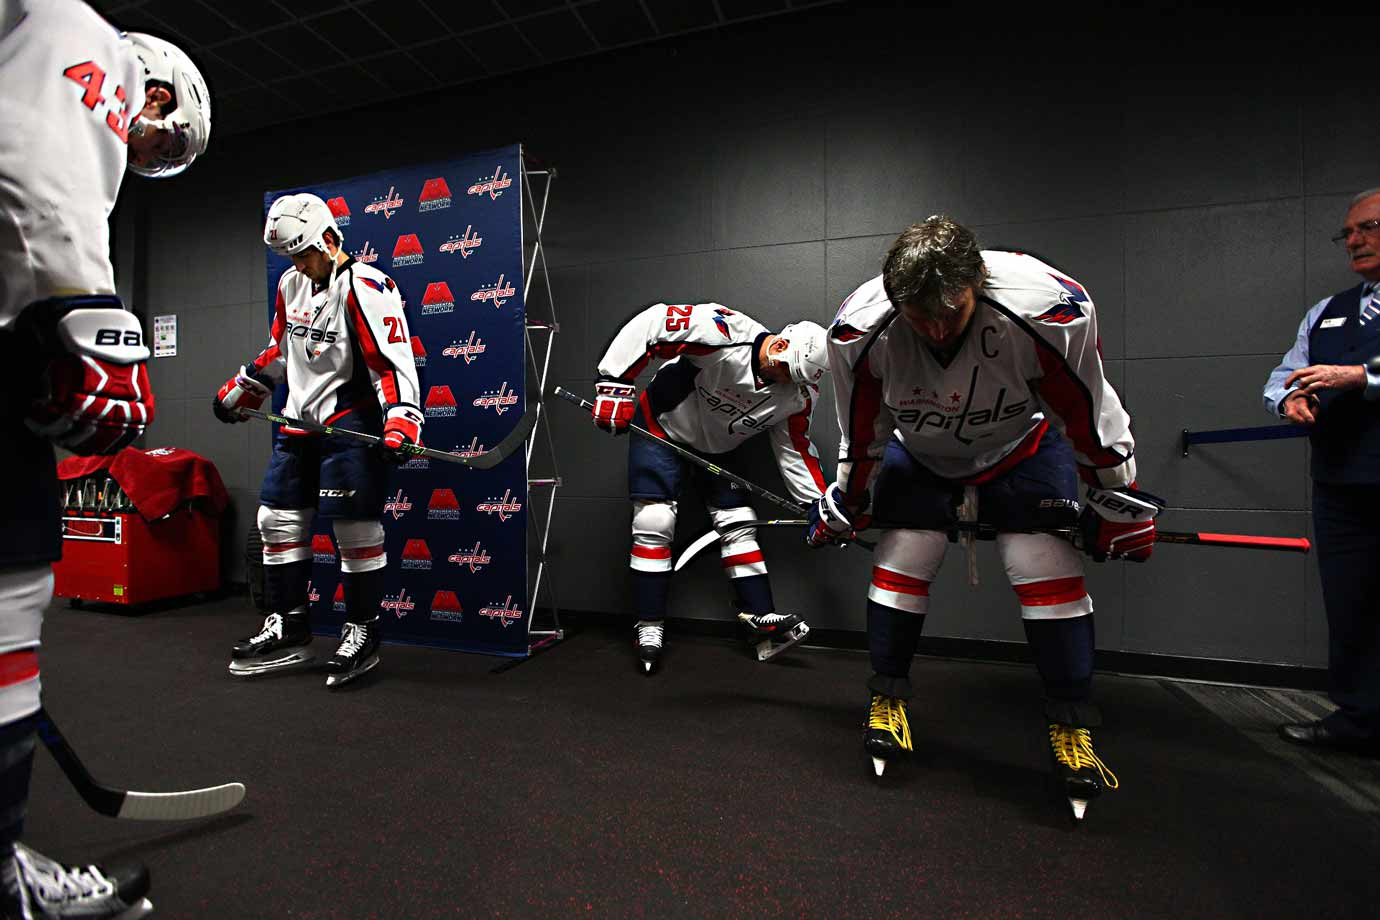 Fully dressed for battle, the Capitals prepare to take the ice for warmups.